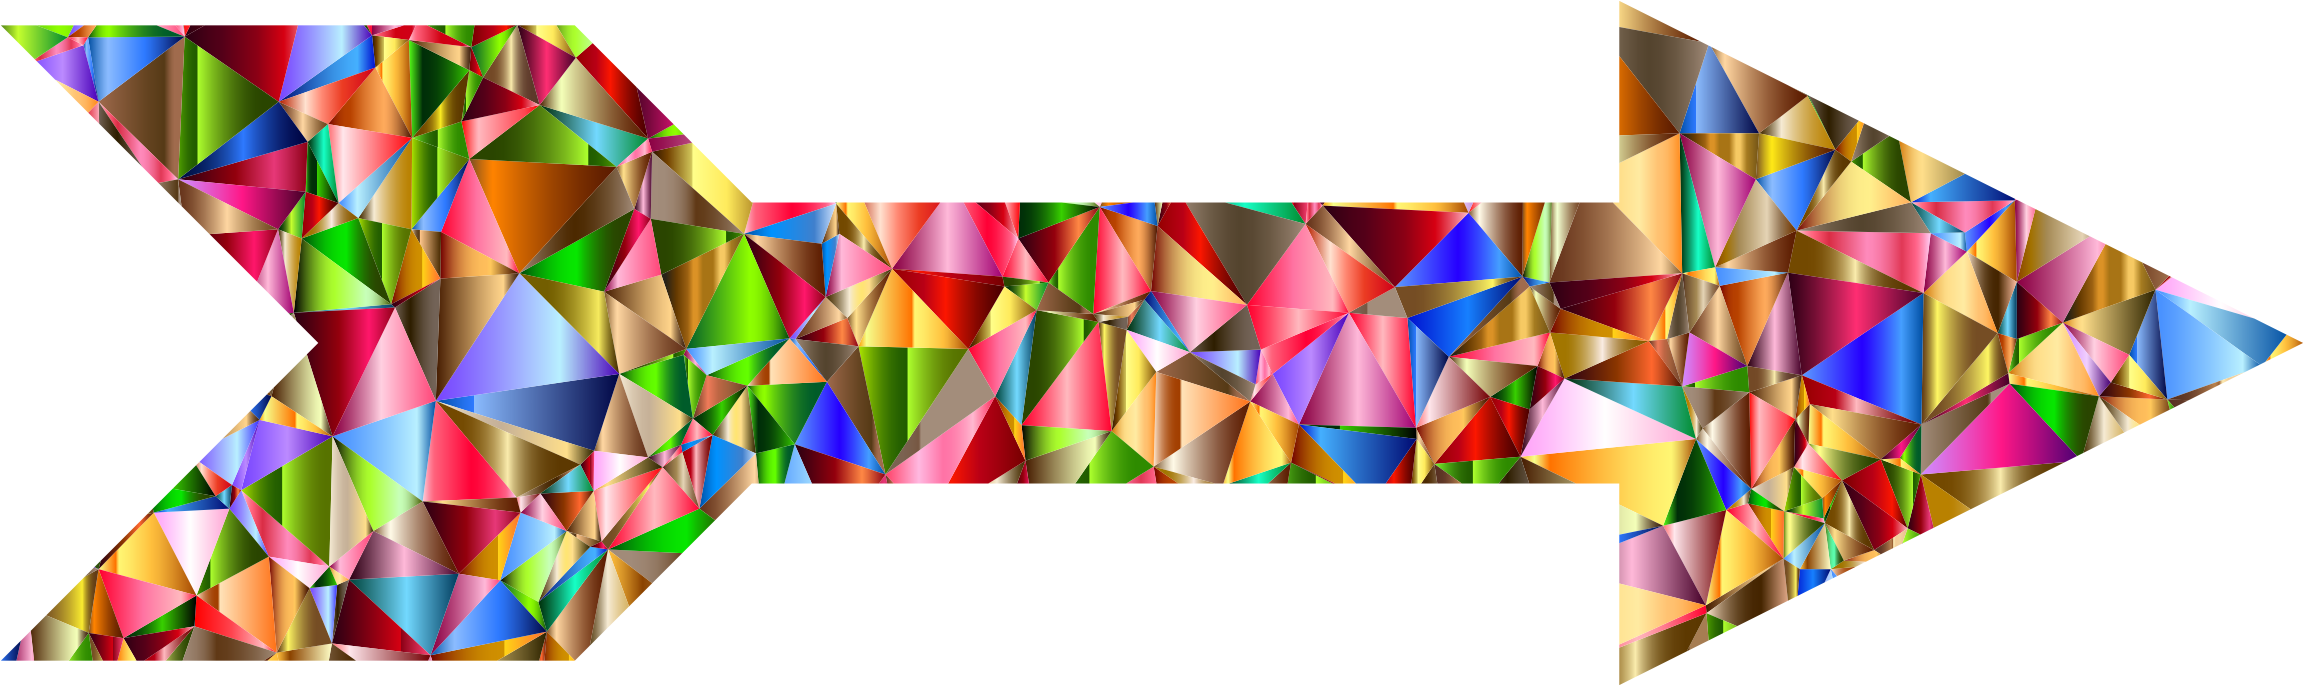 Chromatic Low Poly Arrow by GDJ